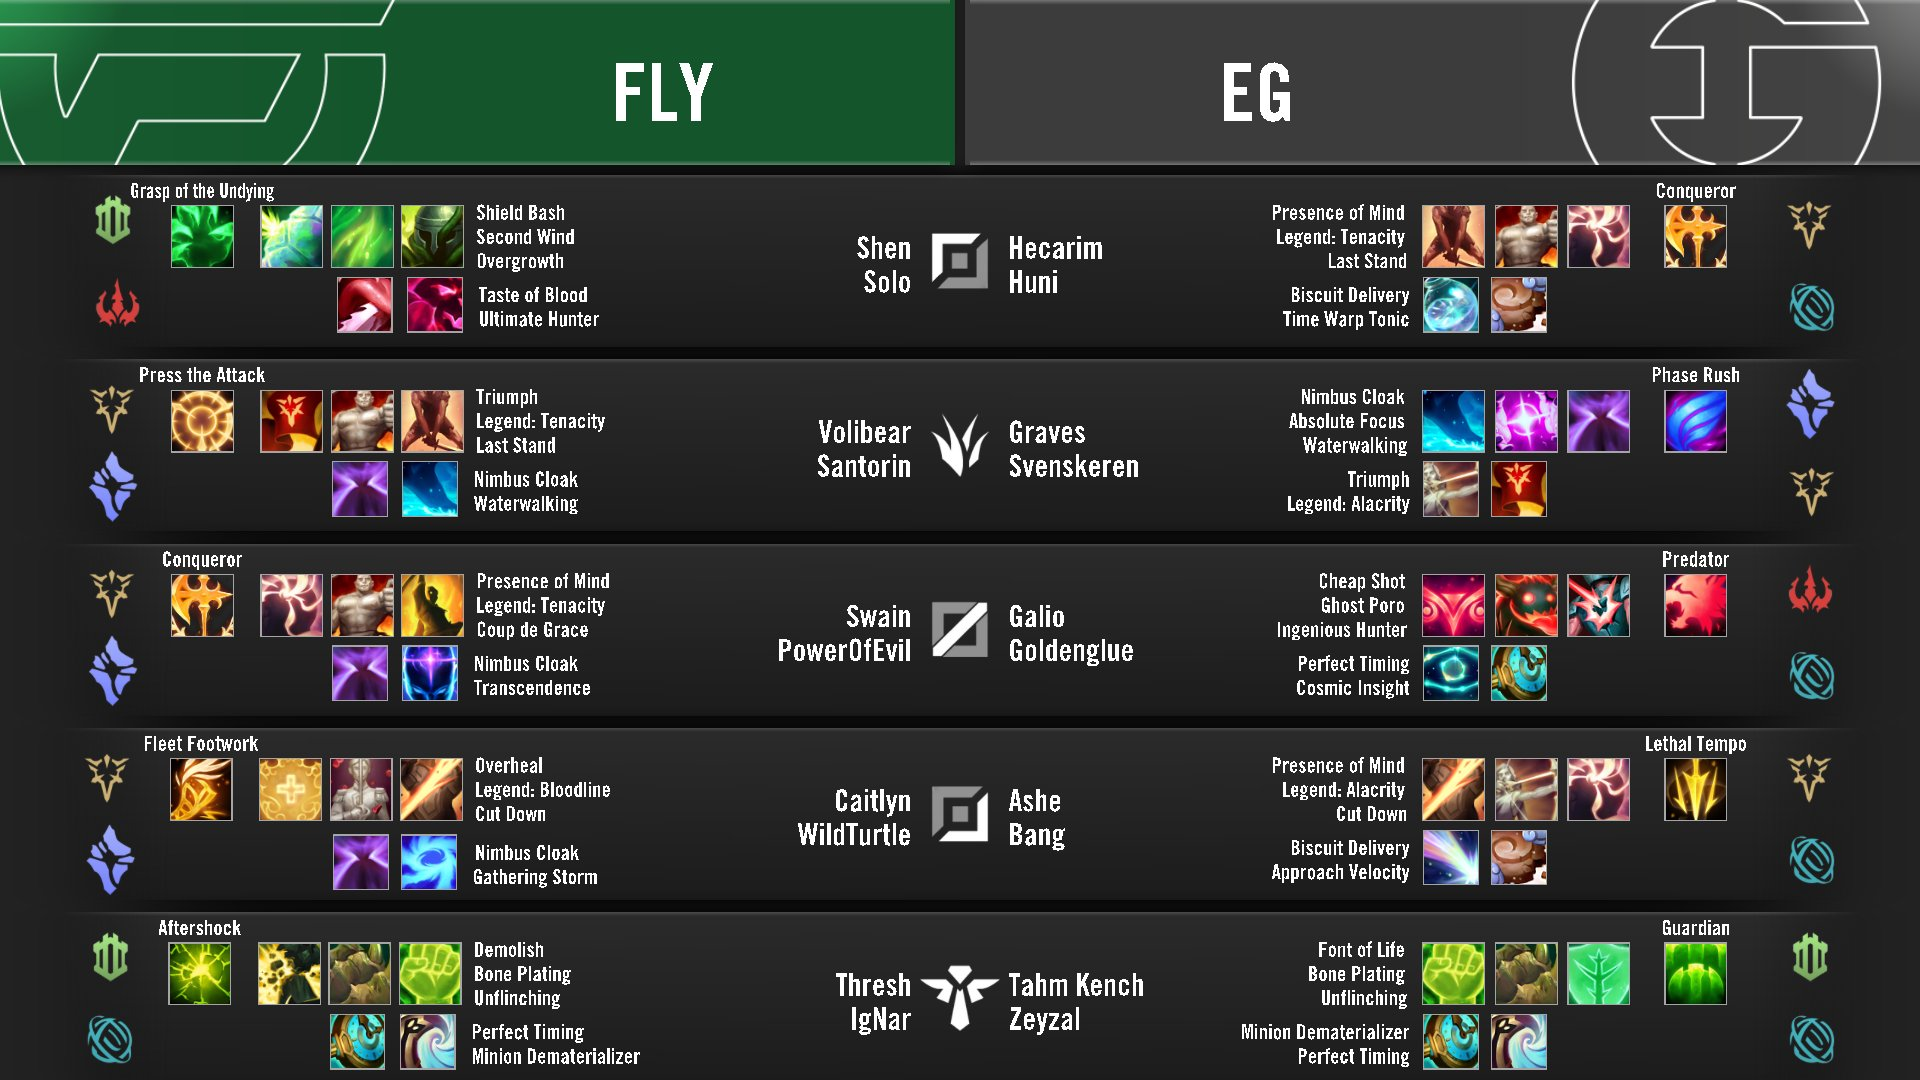 EfaJvHPVoAEgC1A?format=jpg&name=large - FlyQuest vs. Evil Geniuses / LCS 2020 Summer Playoffs - Winners Bracket Round 1 / Post-Match Discussion